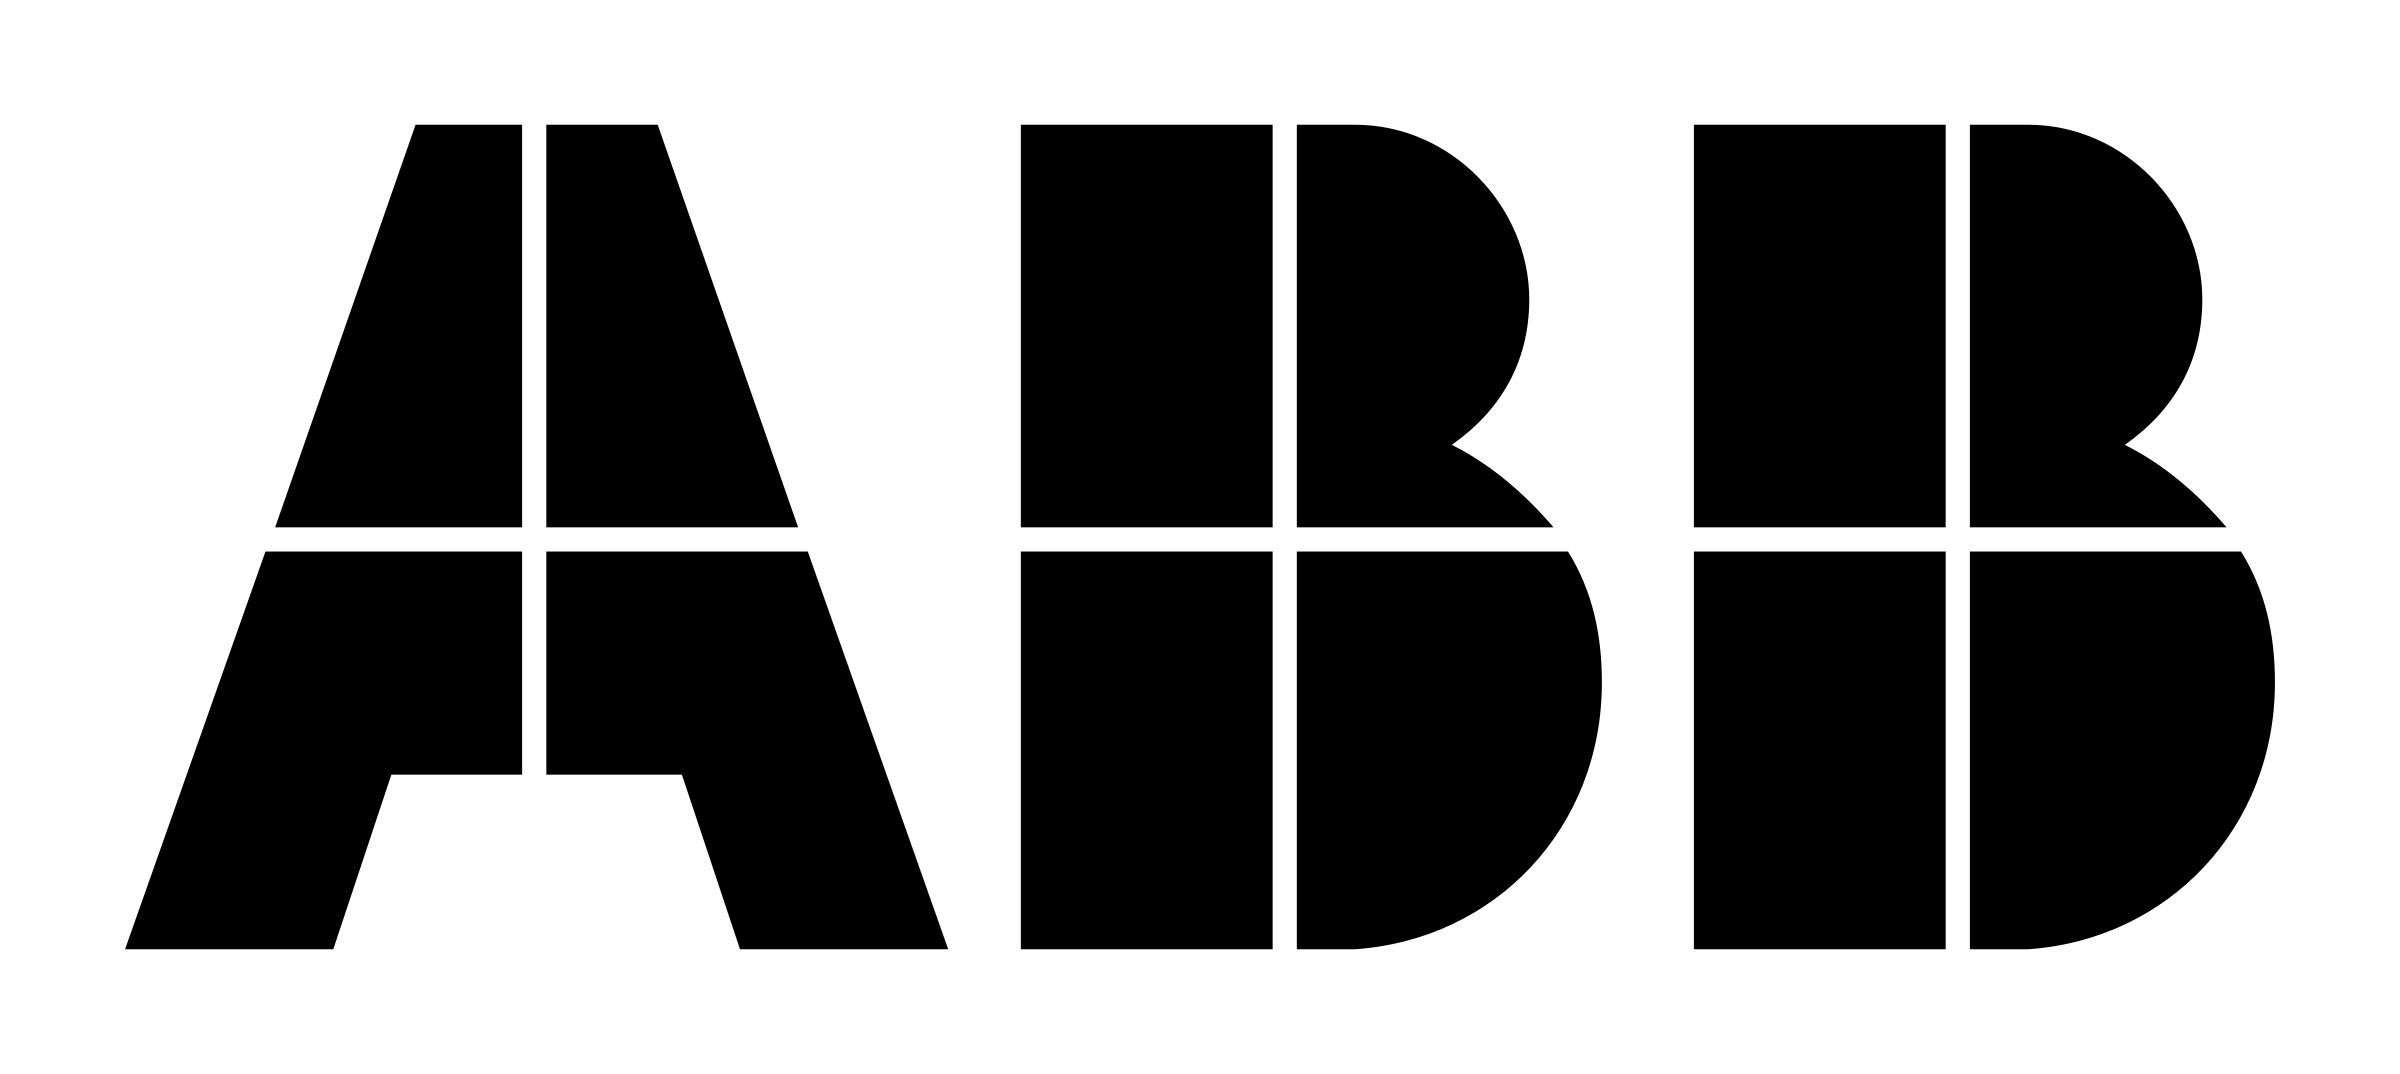 ABB Logo - ABB Logo PNG Transparent & SVG Vector - Freebie Supply